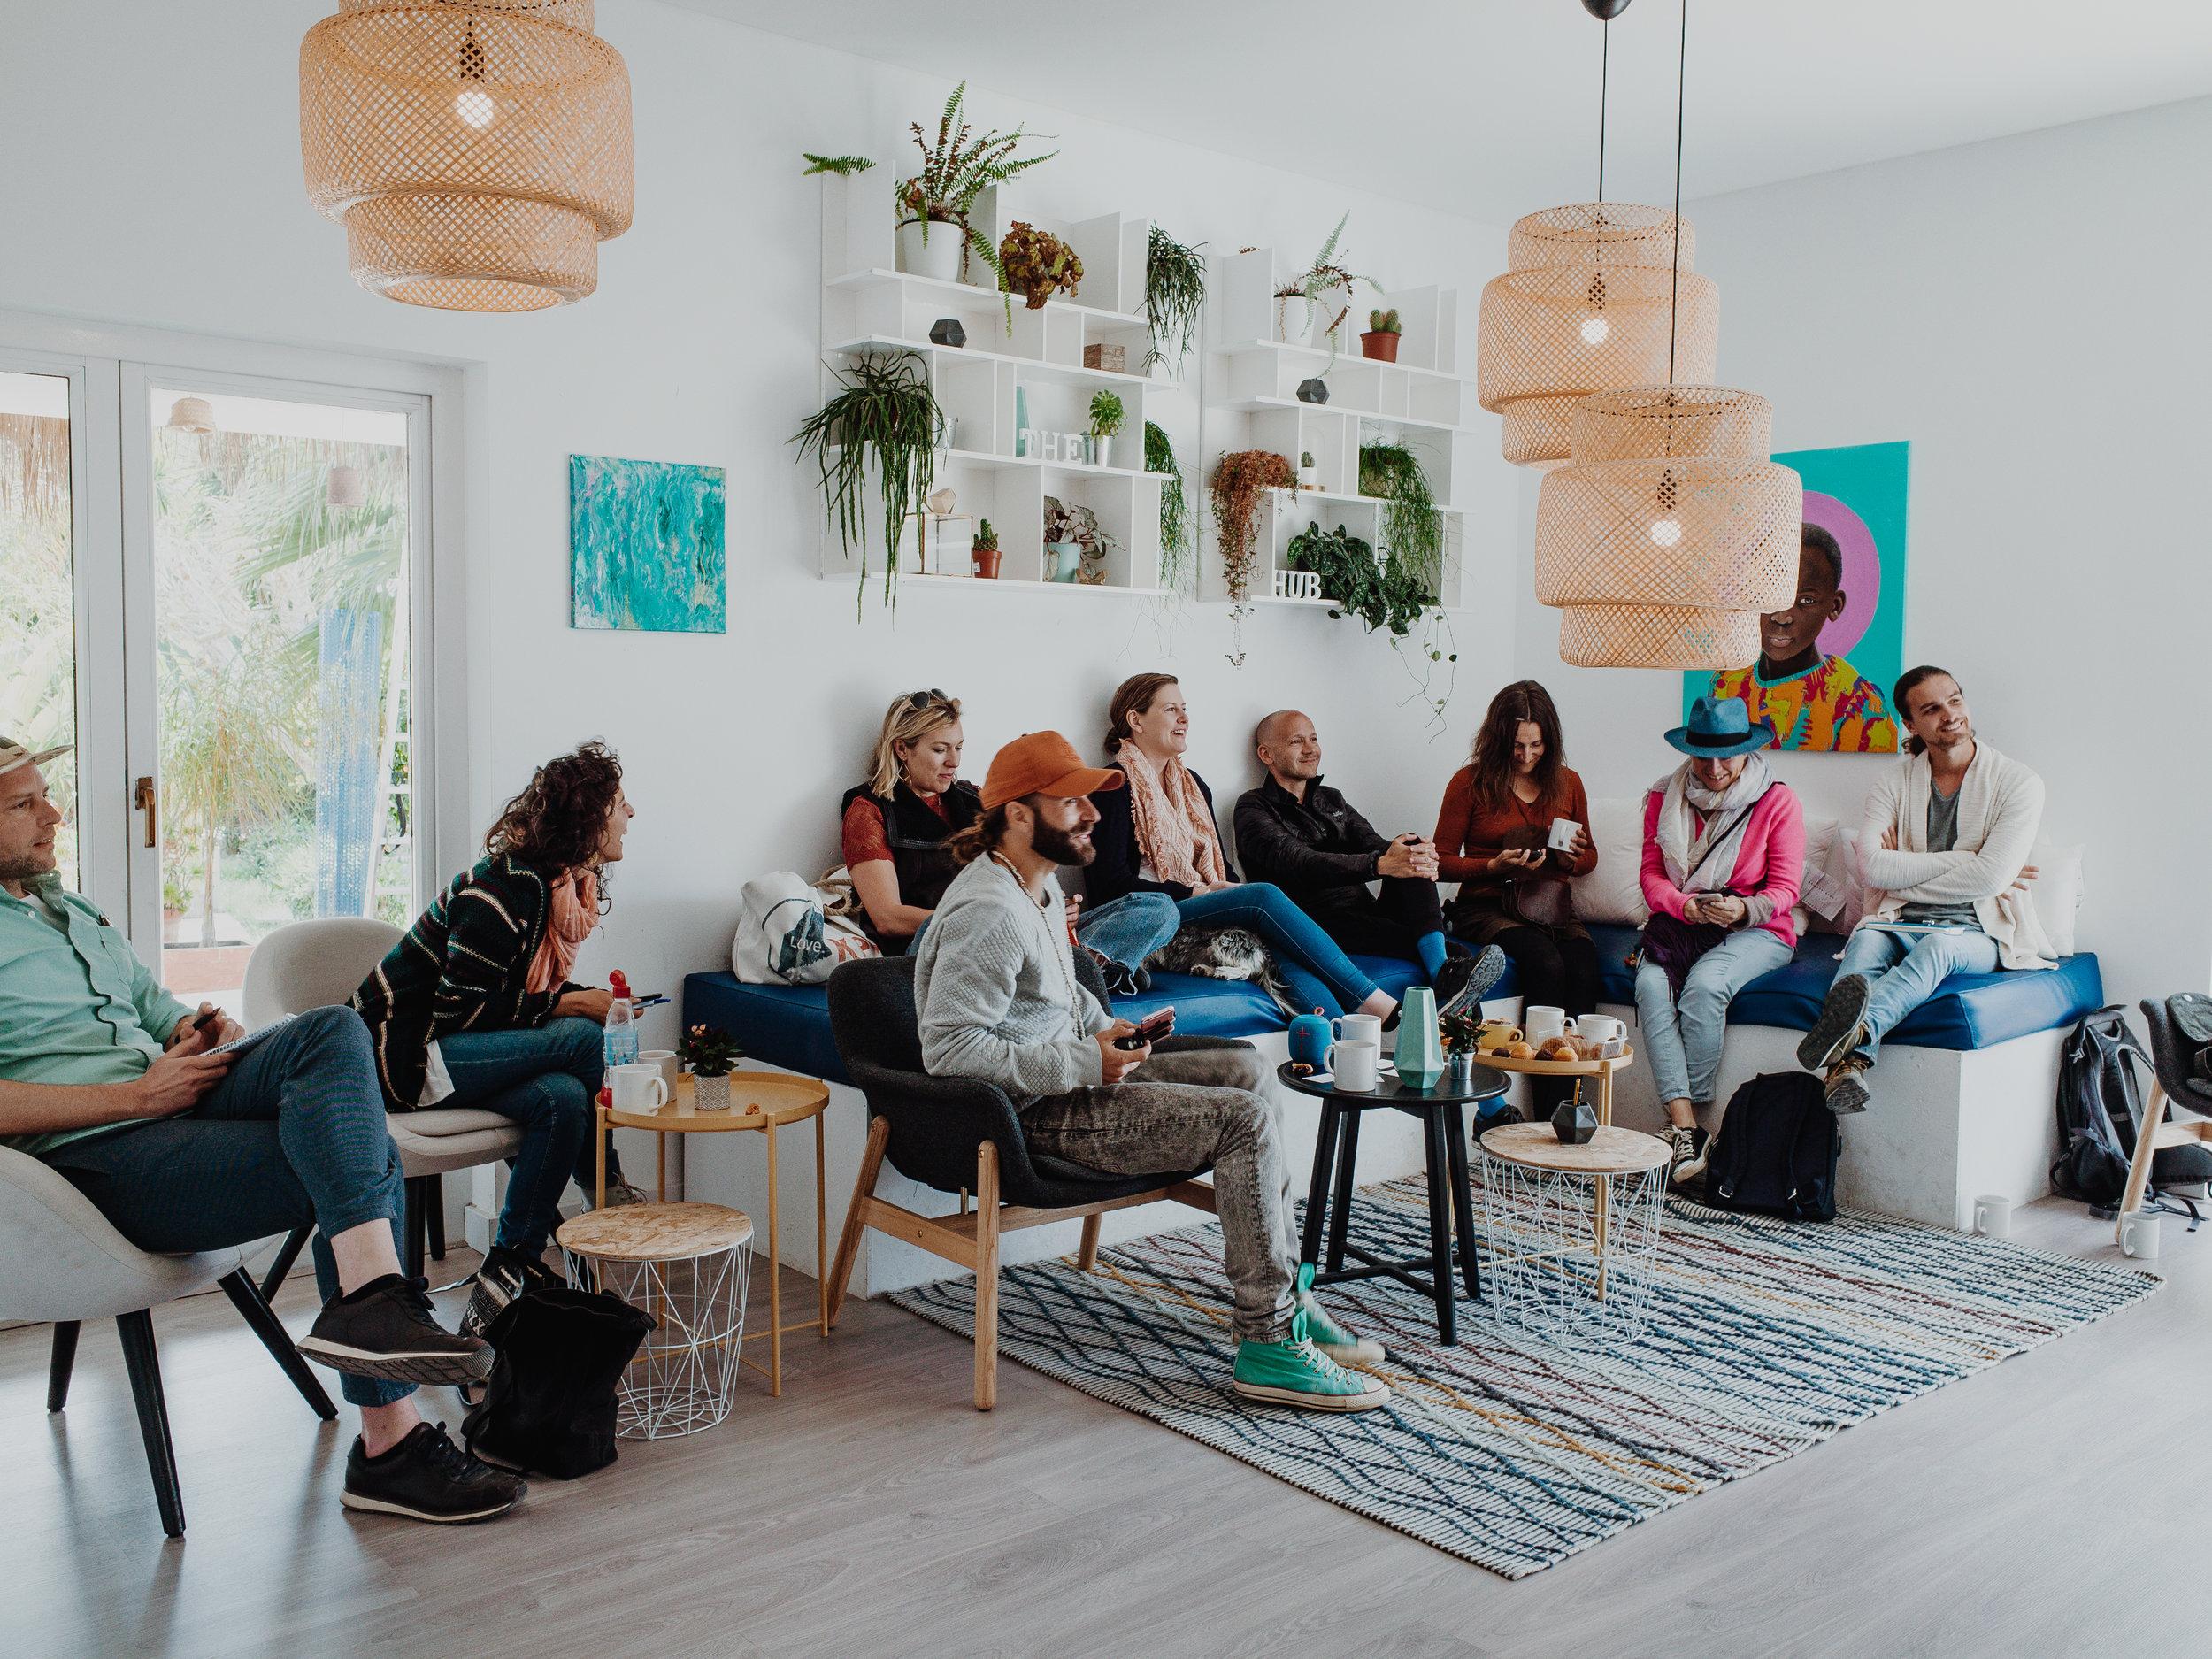 "OUR FREE TASTER TALK ""IS IT THE RIGHT TIME TO START YOUR OWN PODCAST SERIES"" IN MARCH AT CO WORKING SPACE - THE HUB - IBIZA. MAIL US TO BOOK YOURS: JO@RESETREBELPRODUCTIONS"